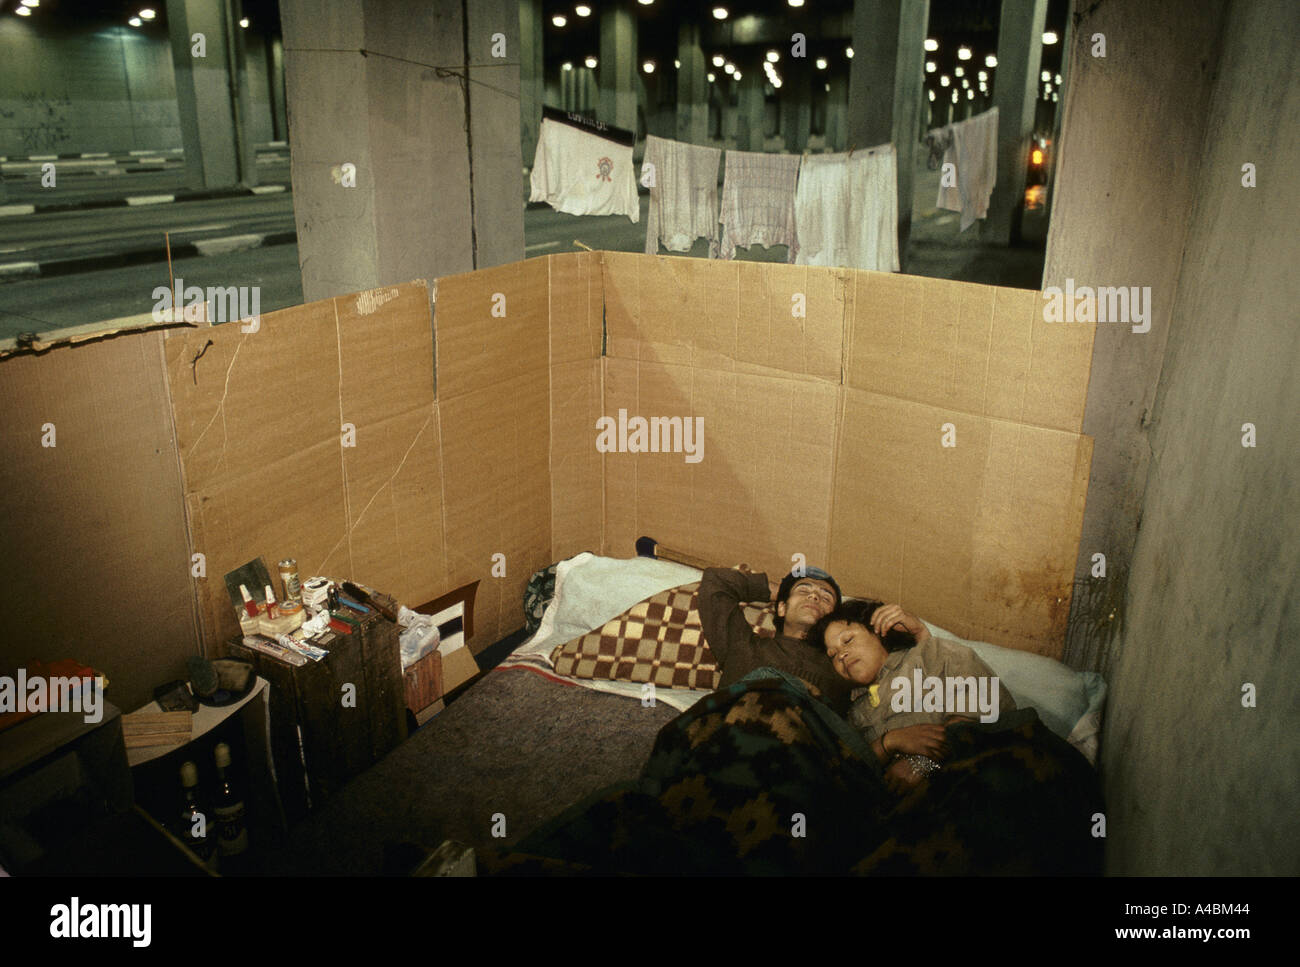 Many homeless like this couple just live on the streets in a cardboard home built beneath a motorway flyover in the heart of Sao Paulo july 1991 - Stock Image